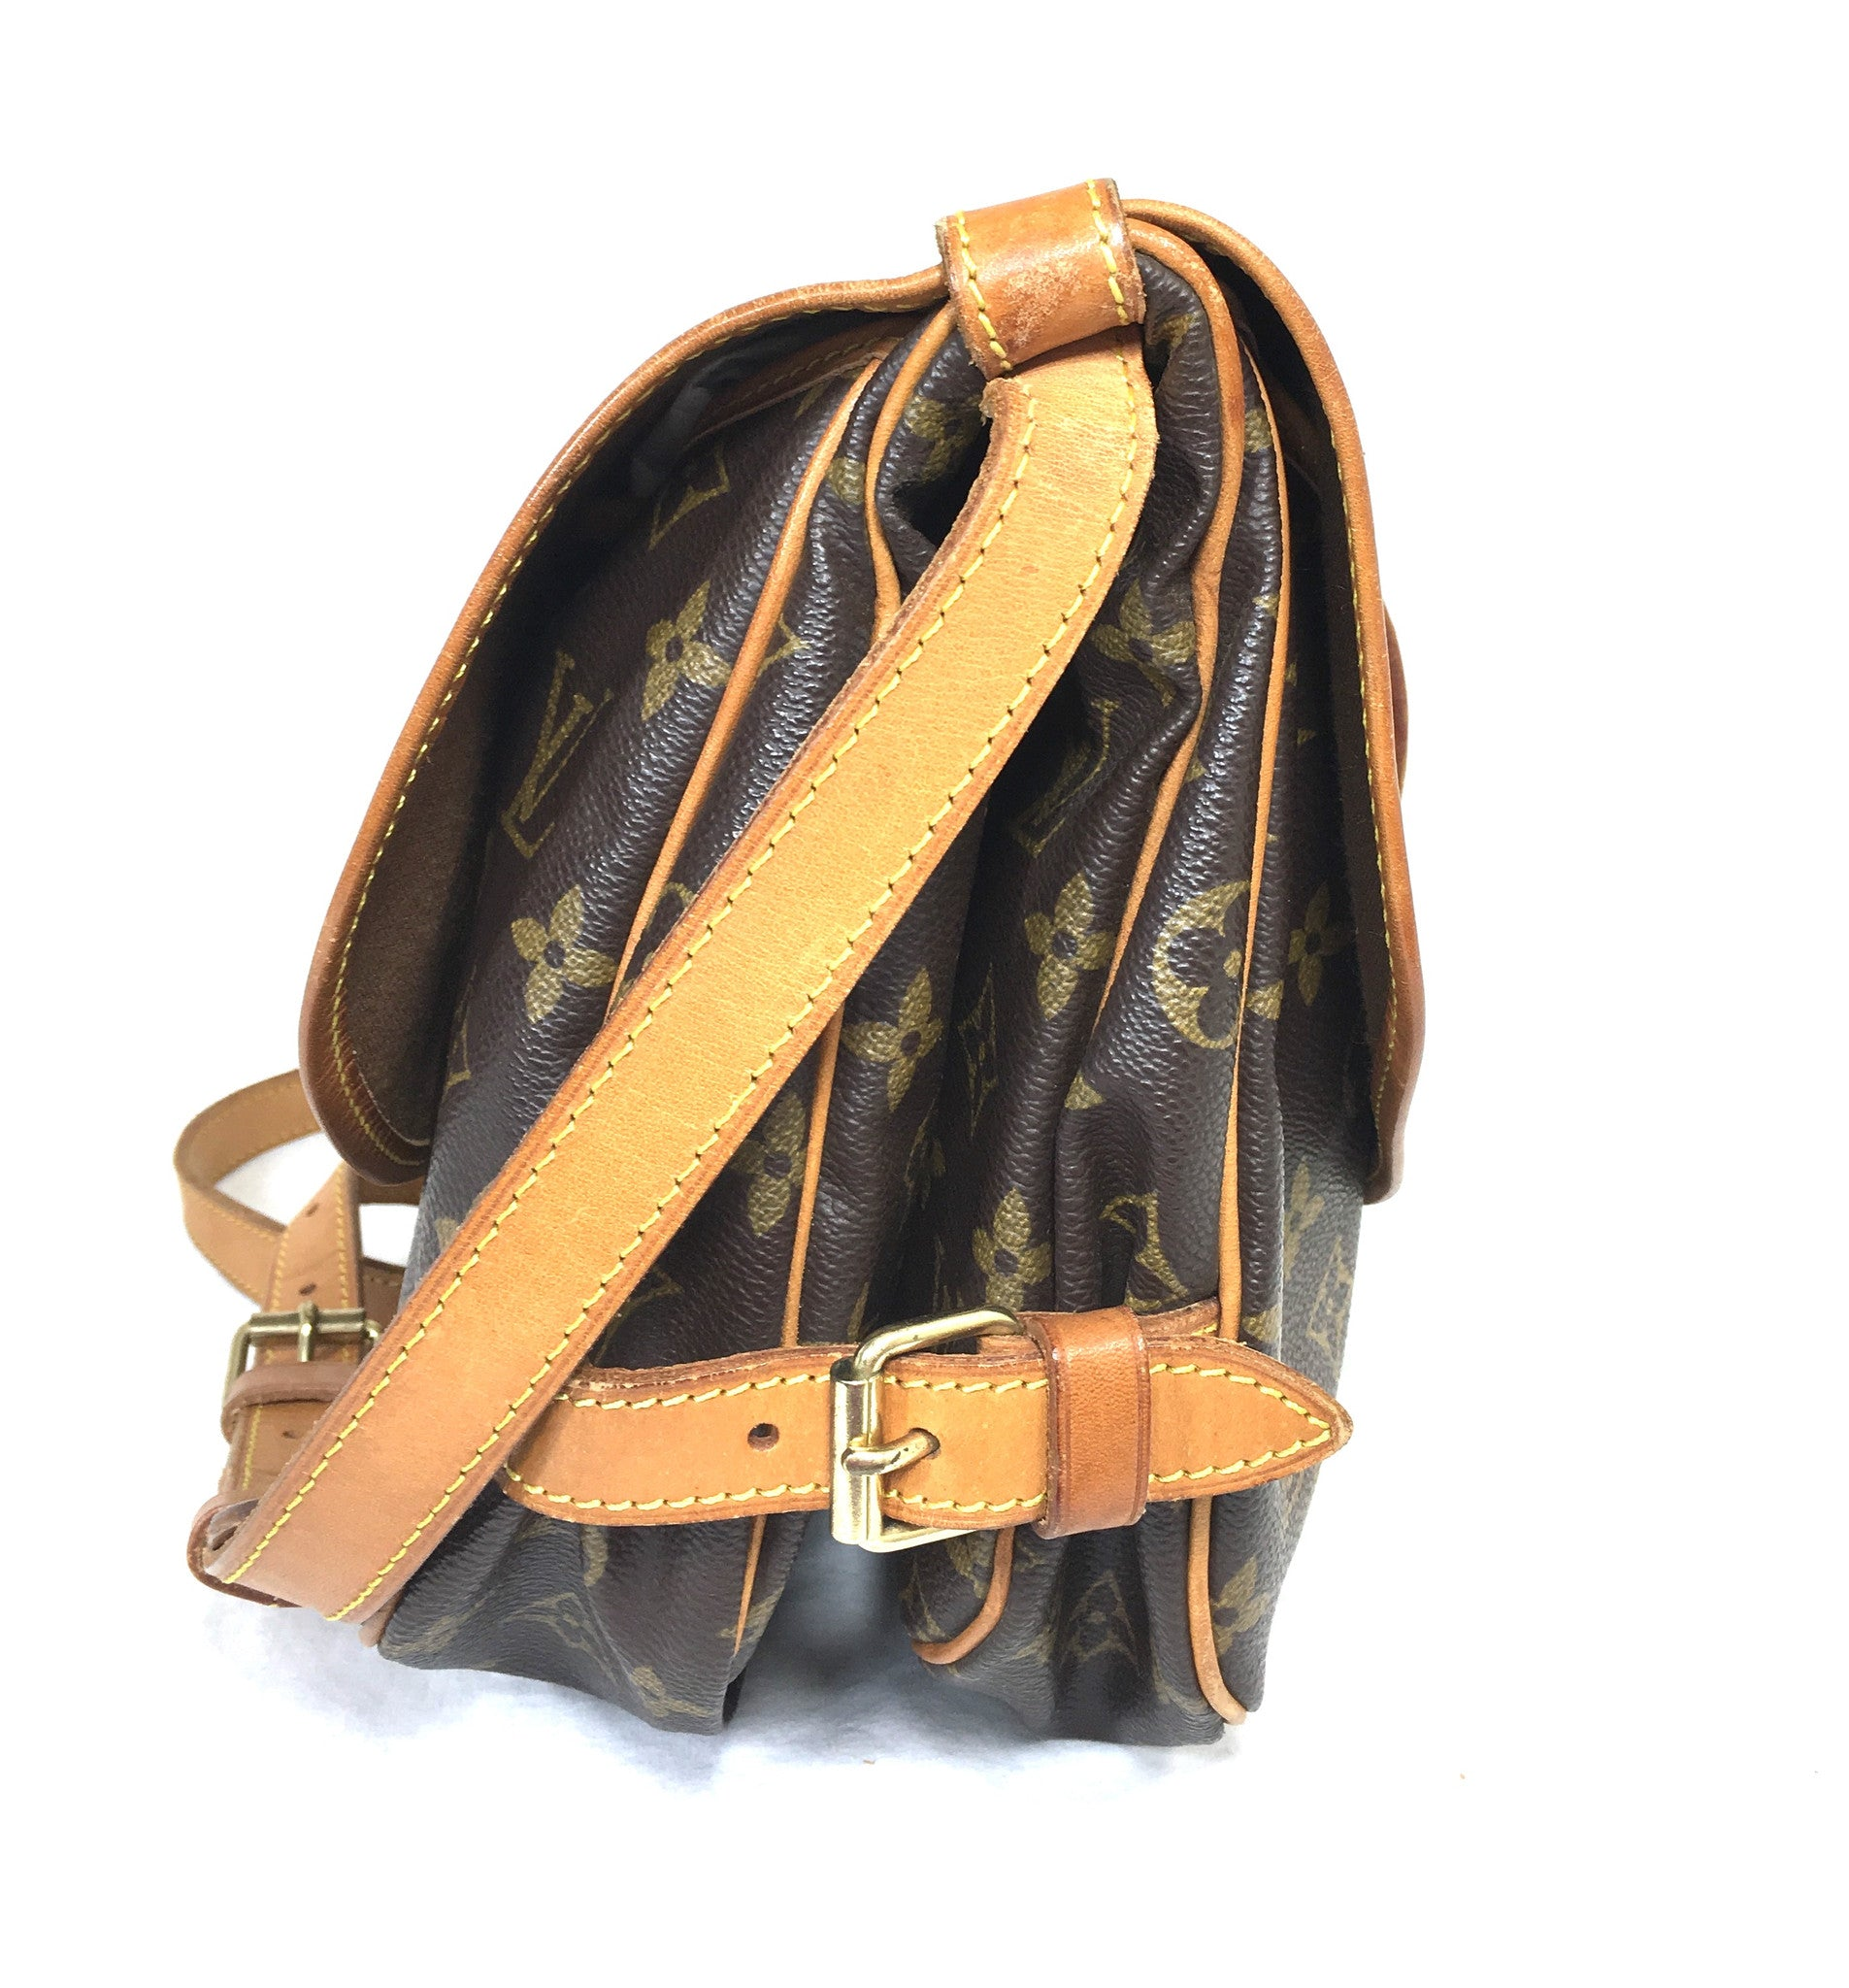 LOUIS VUITTON Monogram Saumur 30 Crossbody Bag